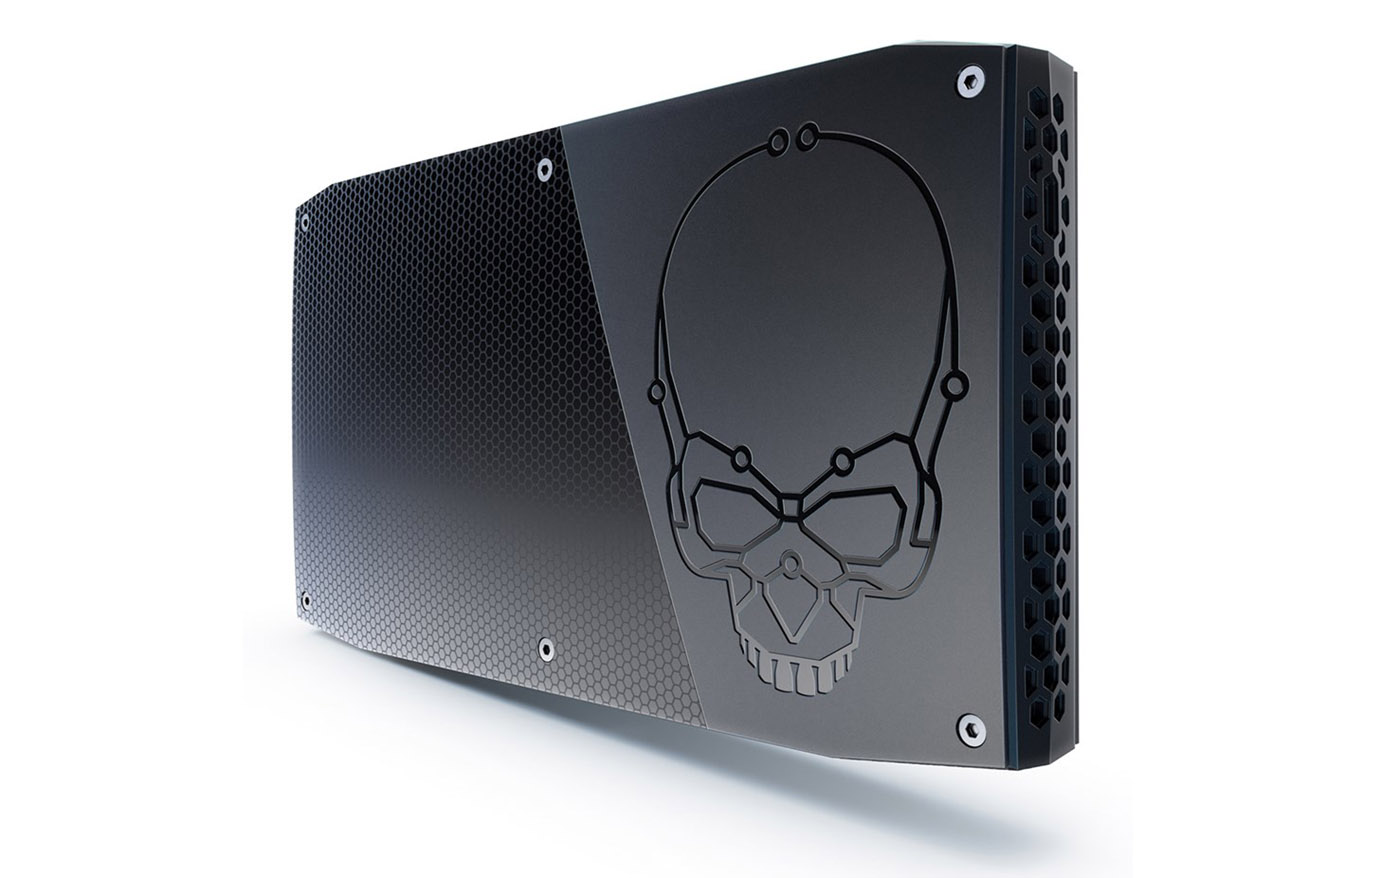 El primer Skull Canyon de Intel presume de Core i7